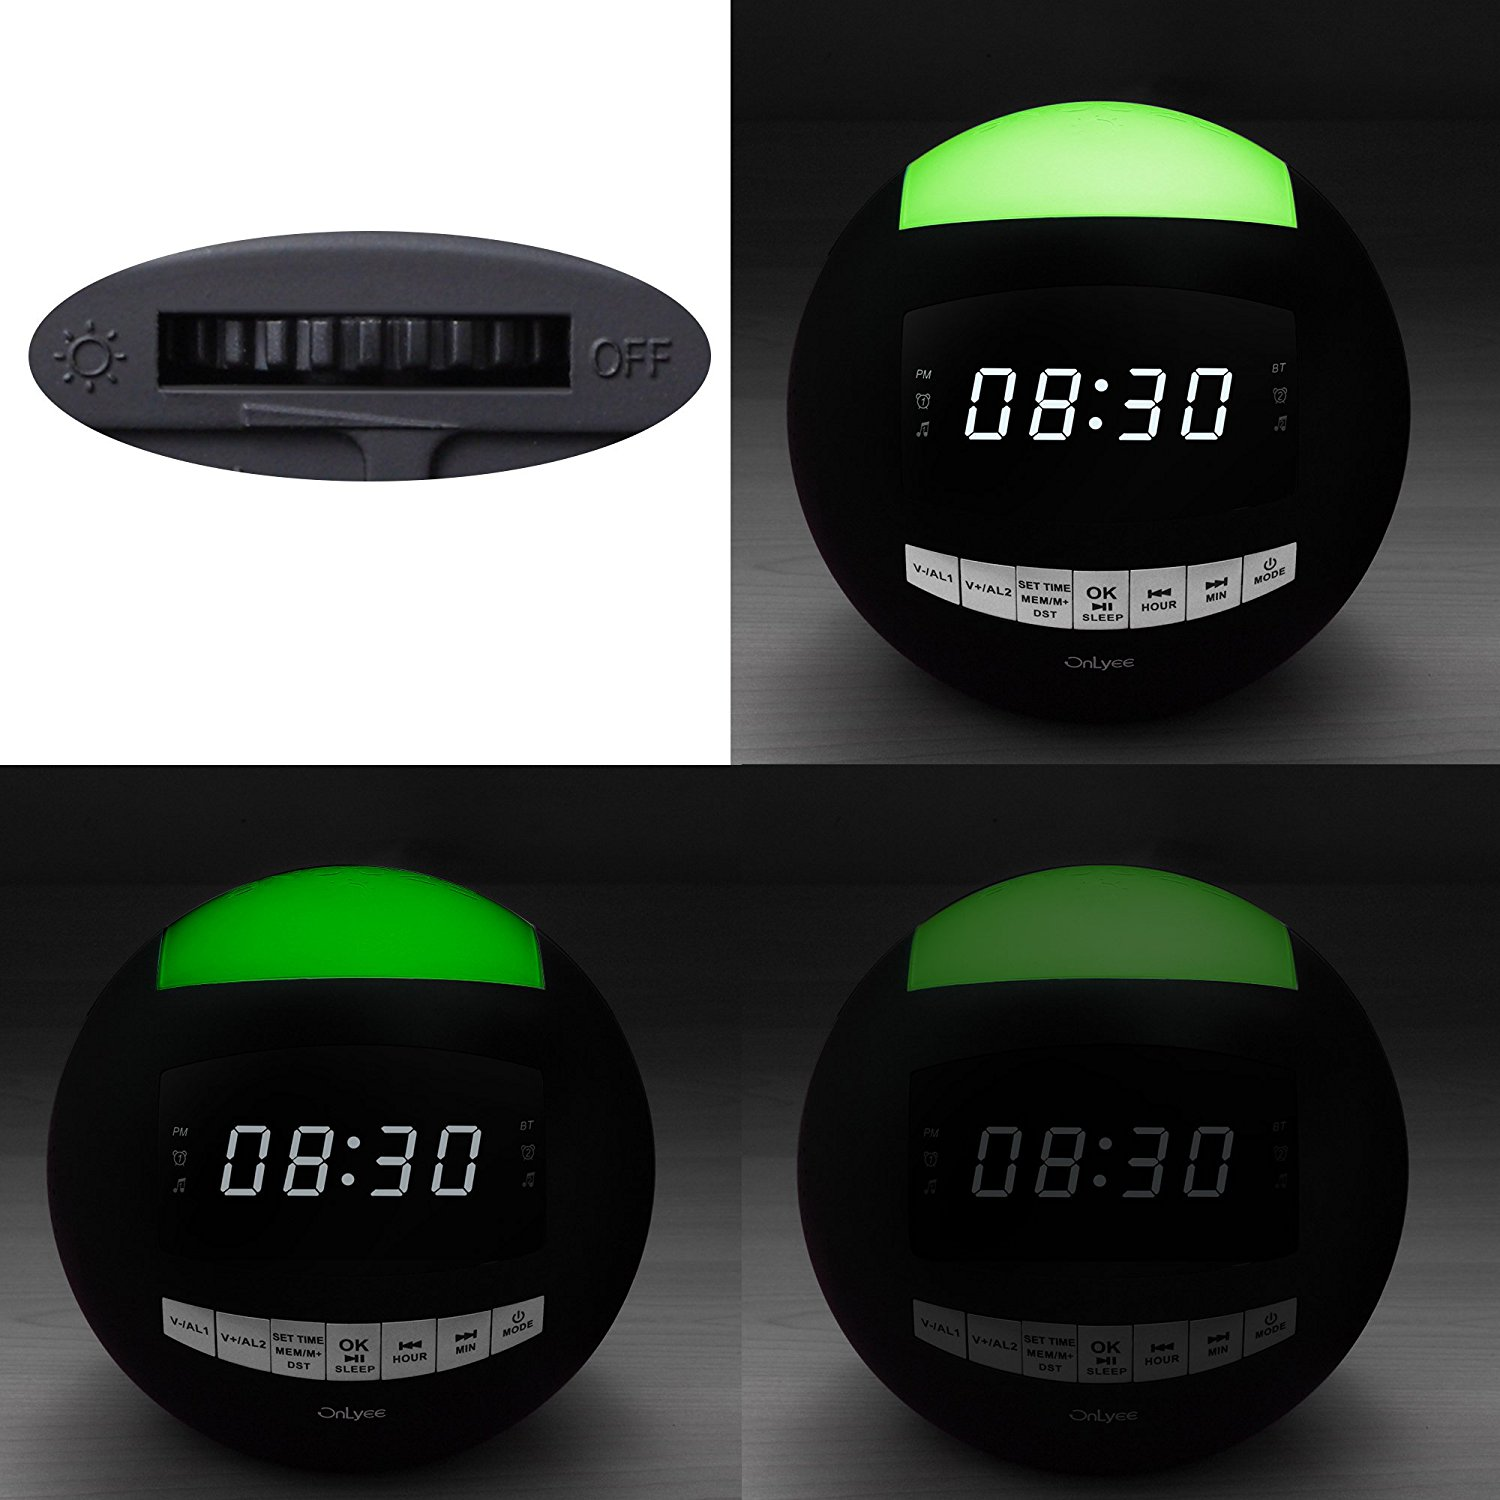 OnLyee Dual Alarm Clock FM Radio & Wireless Bluetooth Speaker with USB Charging,Multi-Color LED Night Light,Hands-free Calls,Snooze(Batteries Included) image 5